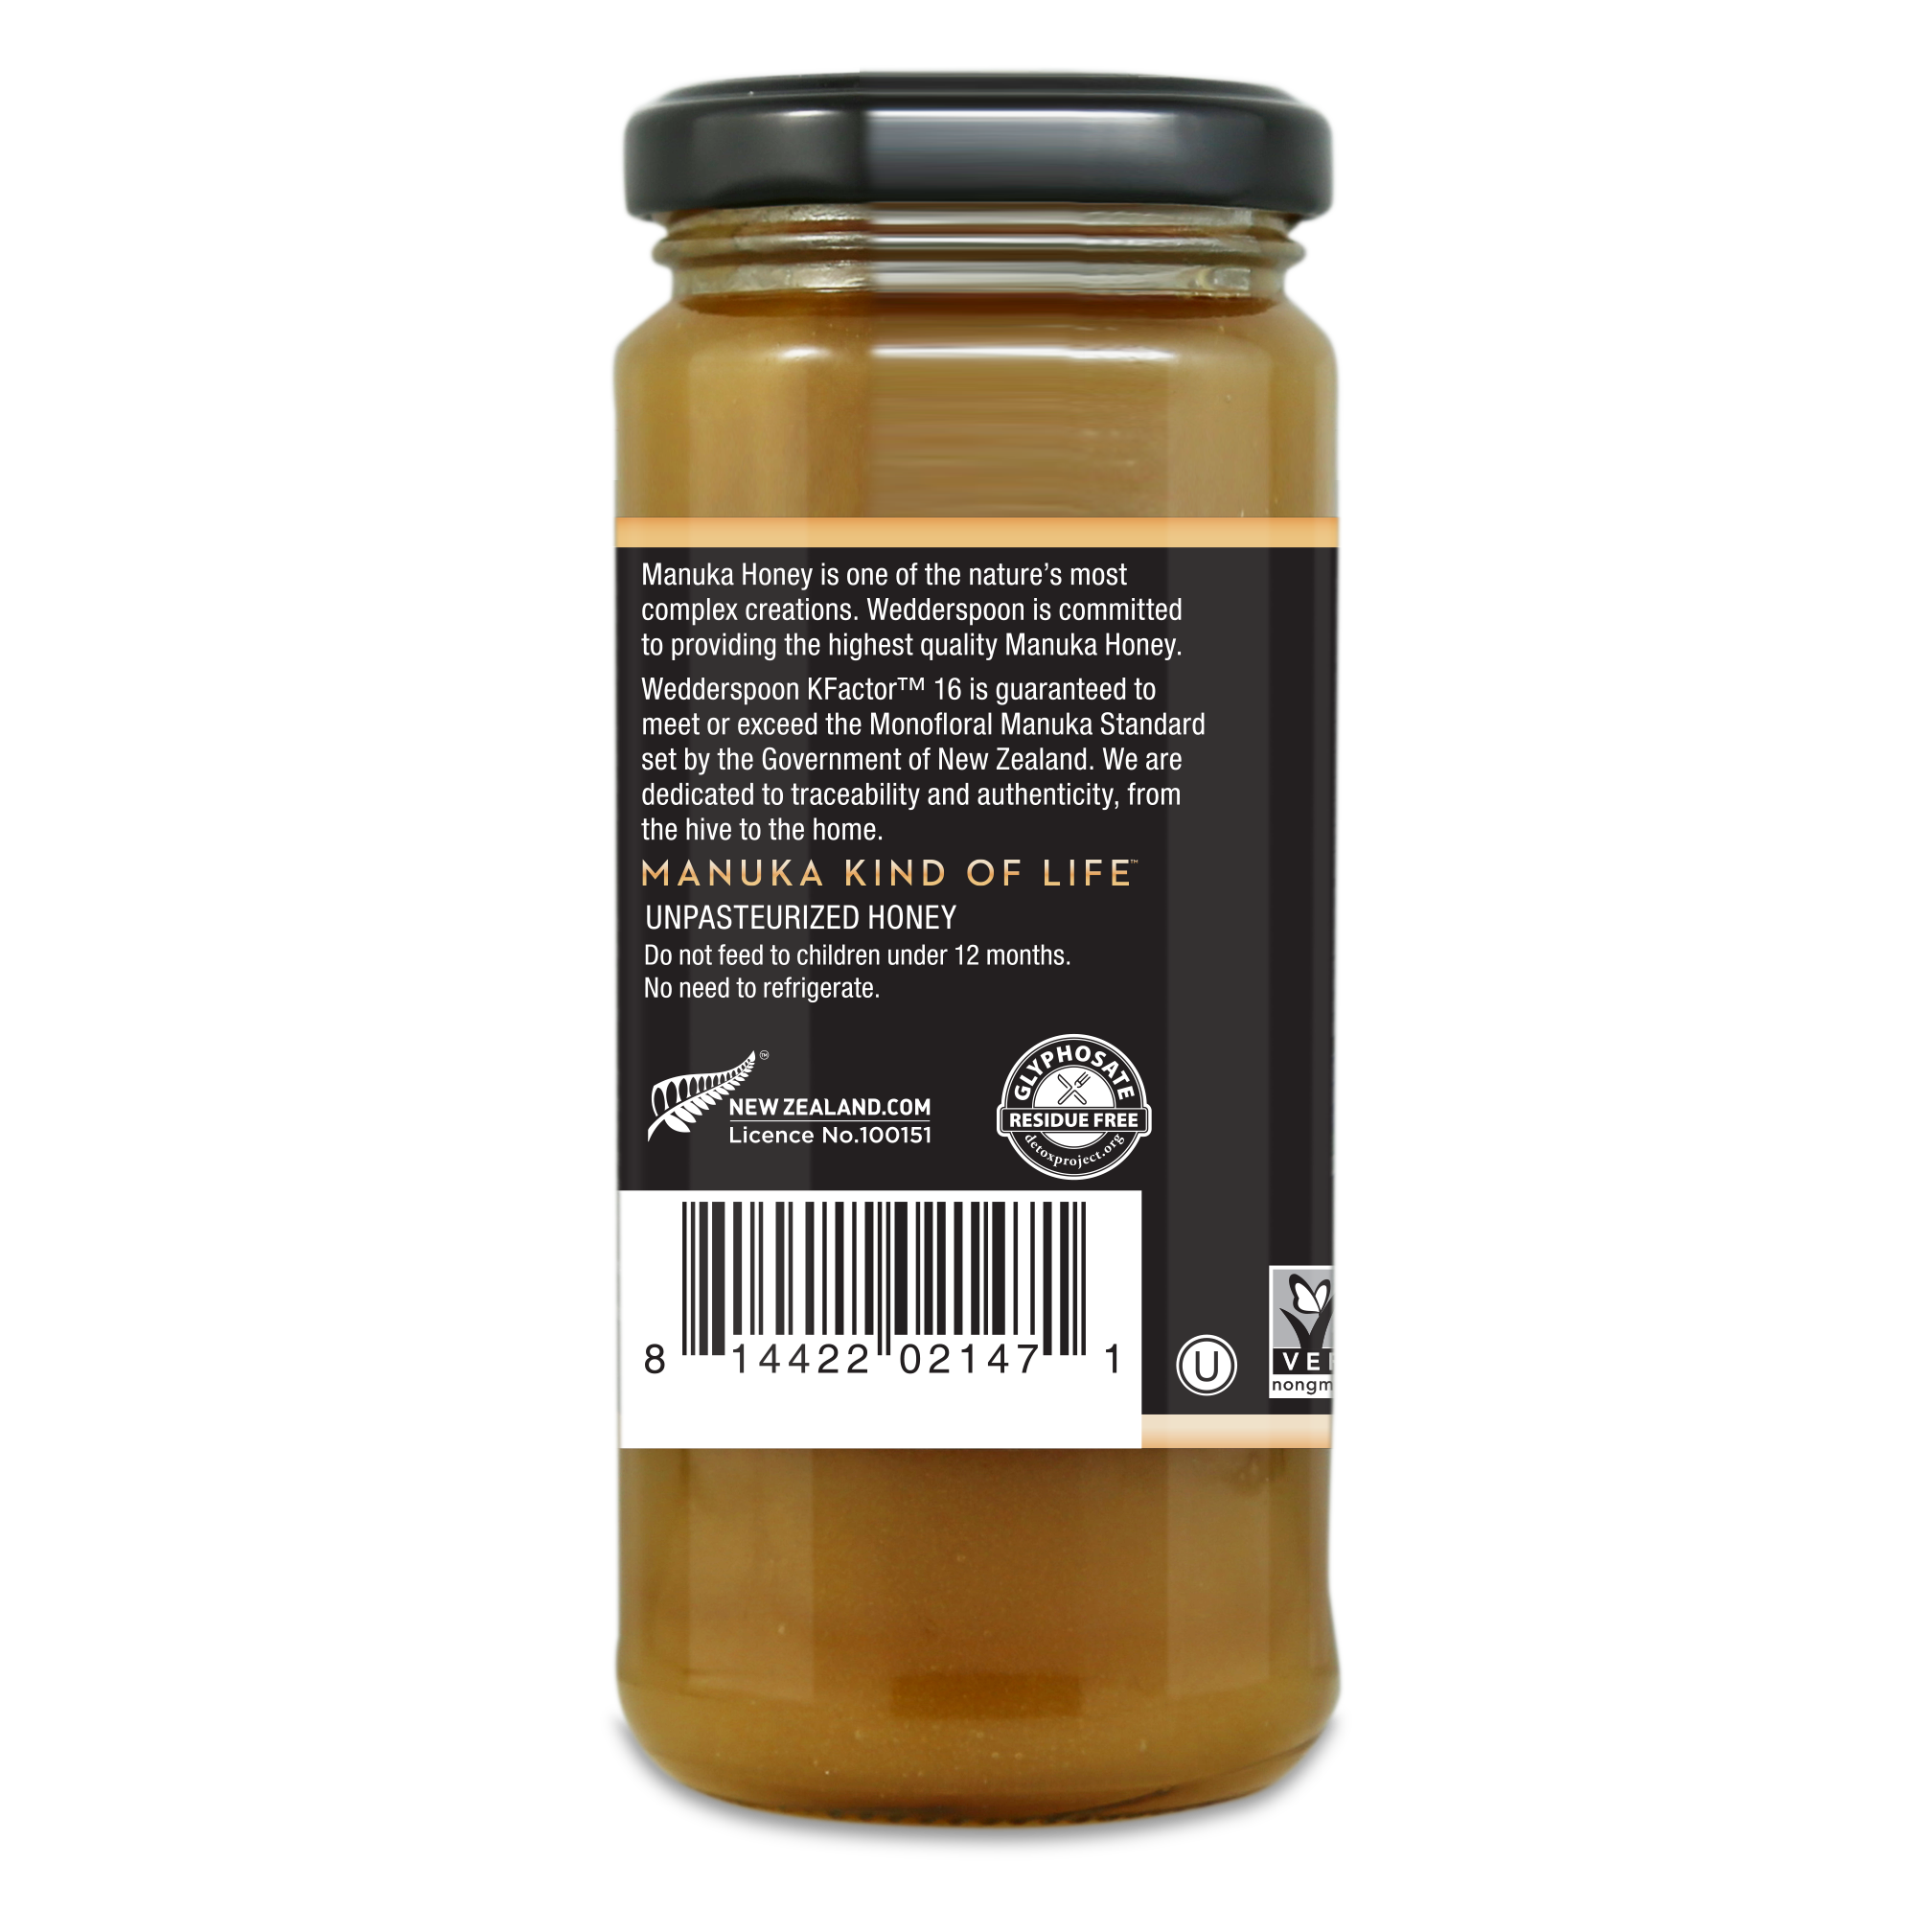 Wedderspoon Manuka Honey K16 325g 1